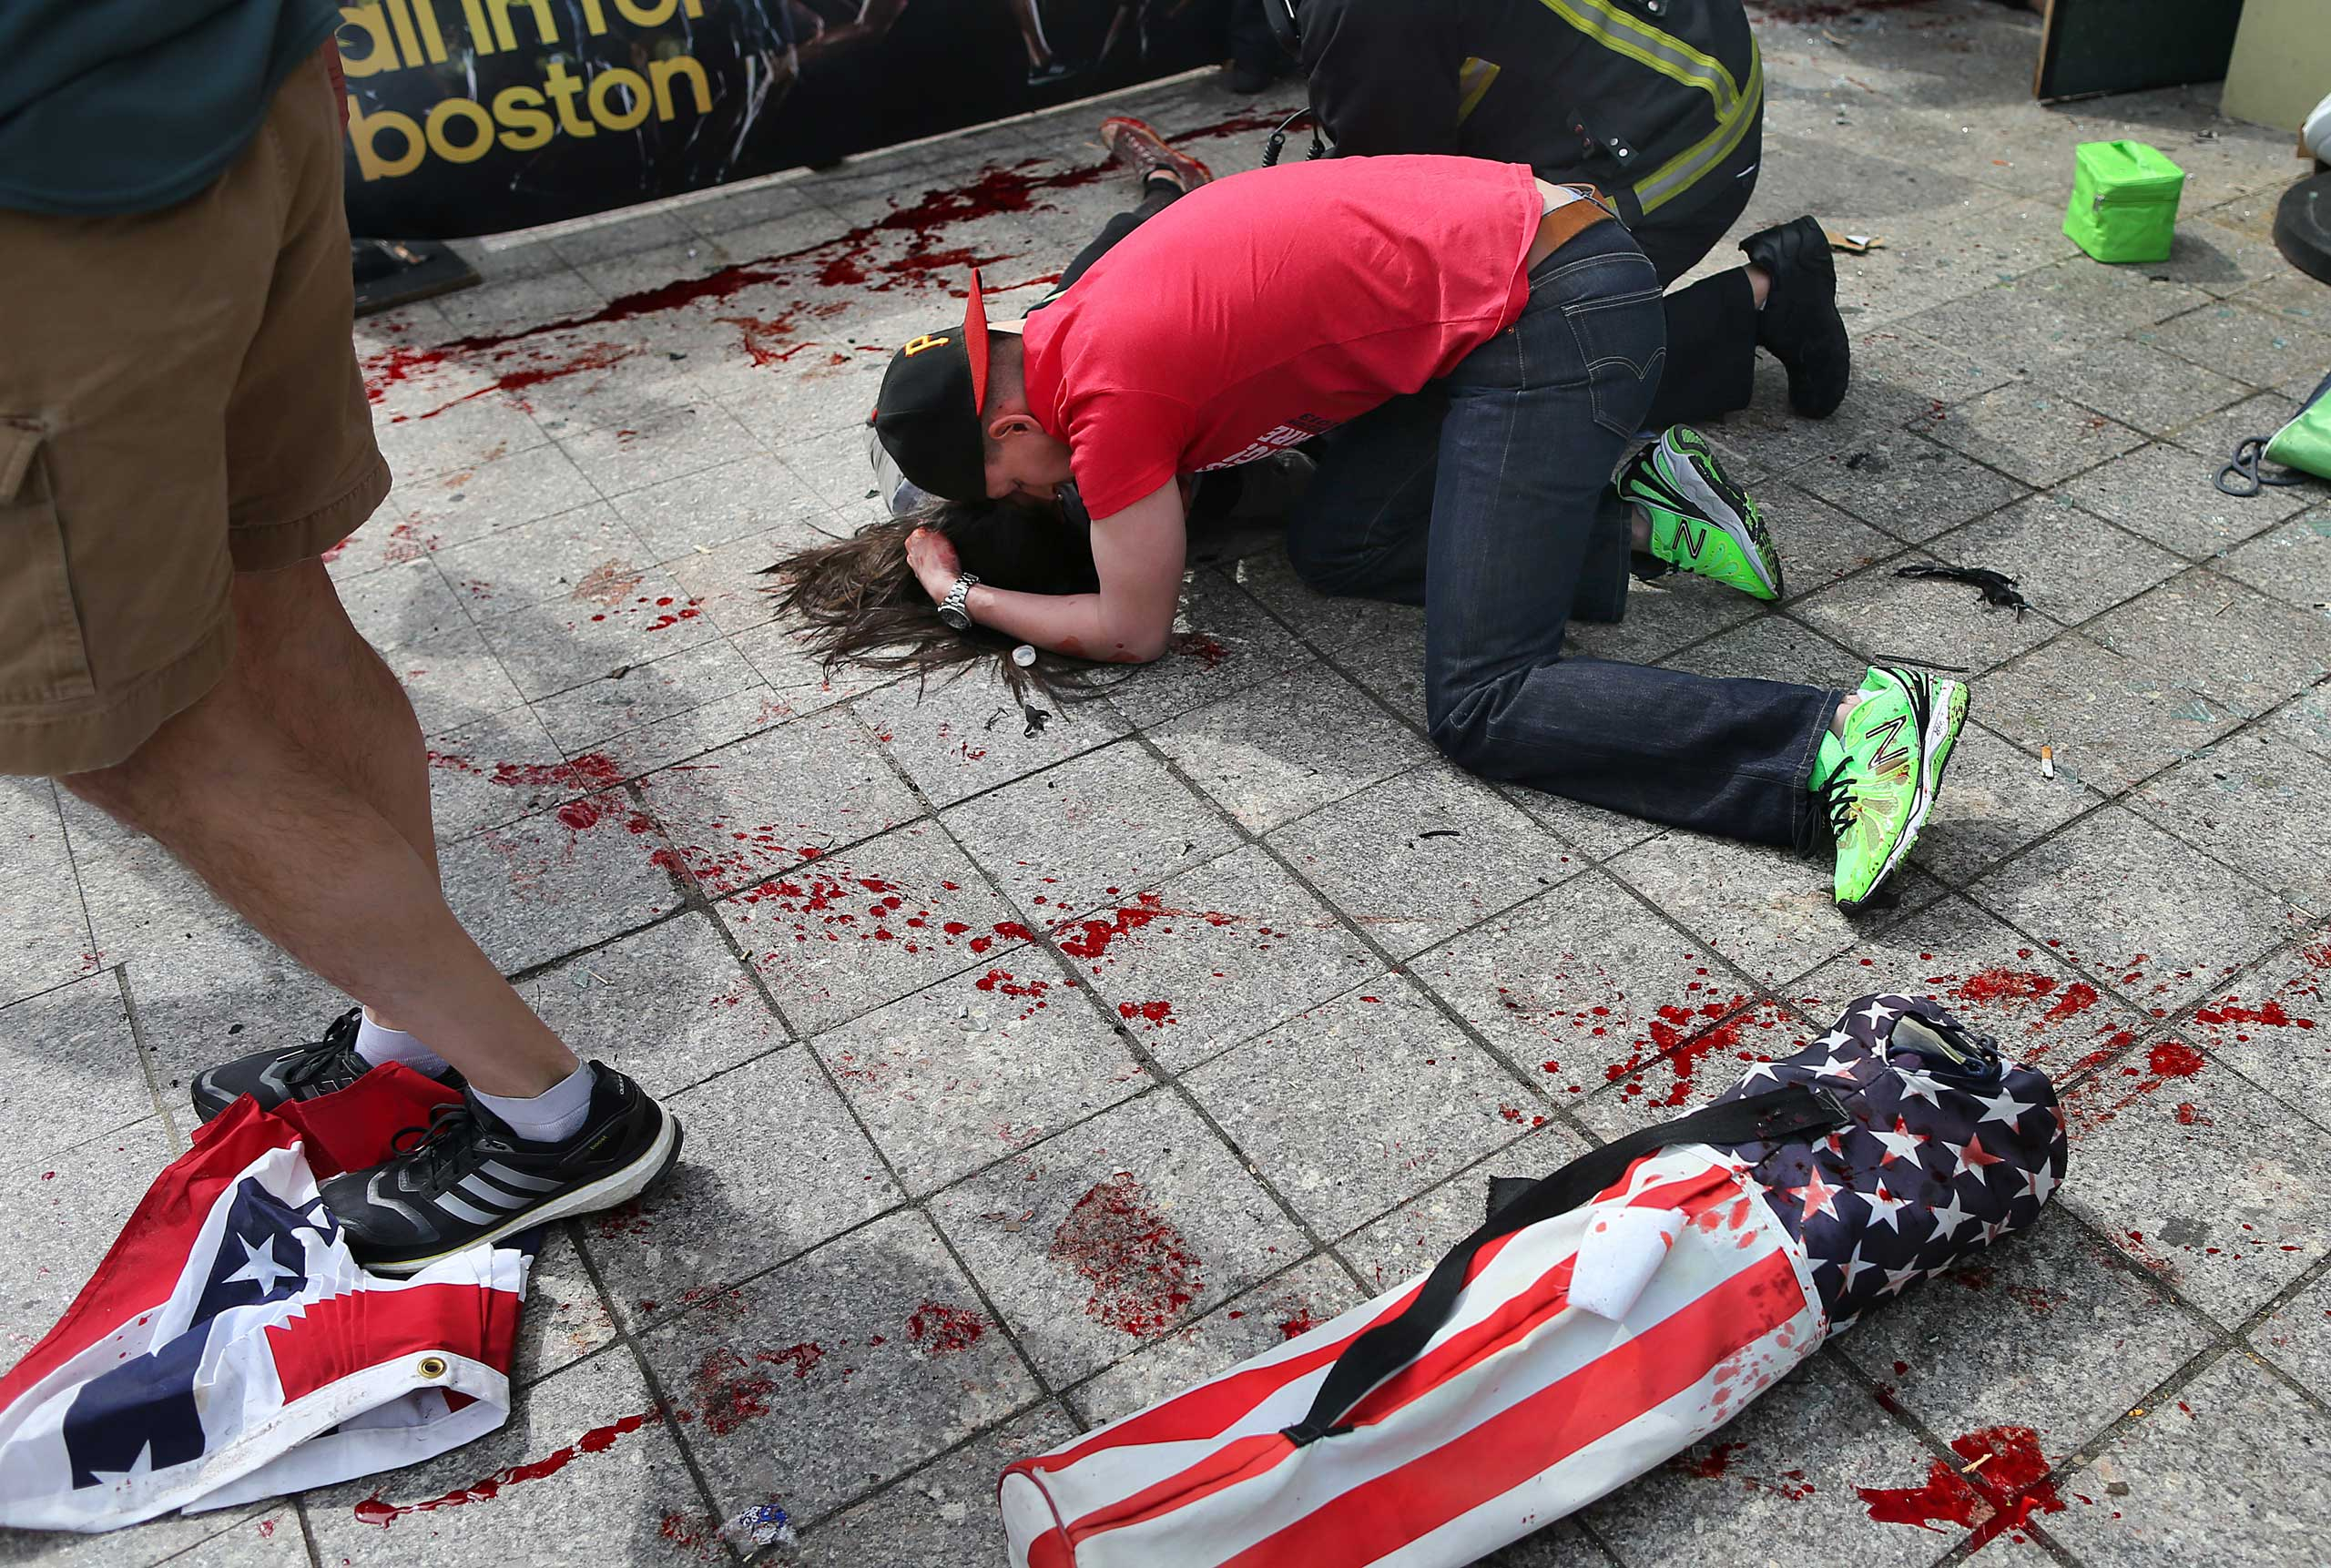 April 15, 2013. A man comforts a victim on the sidewalk at the scene of the explosion.